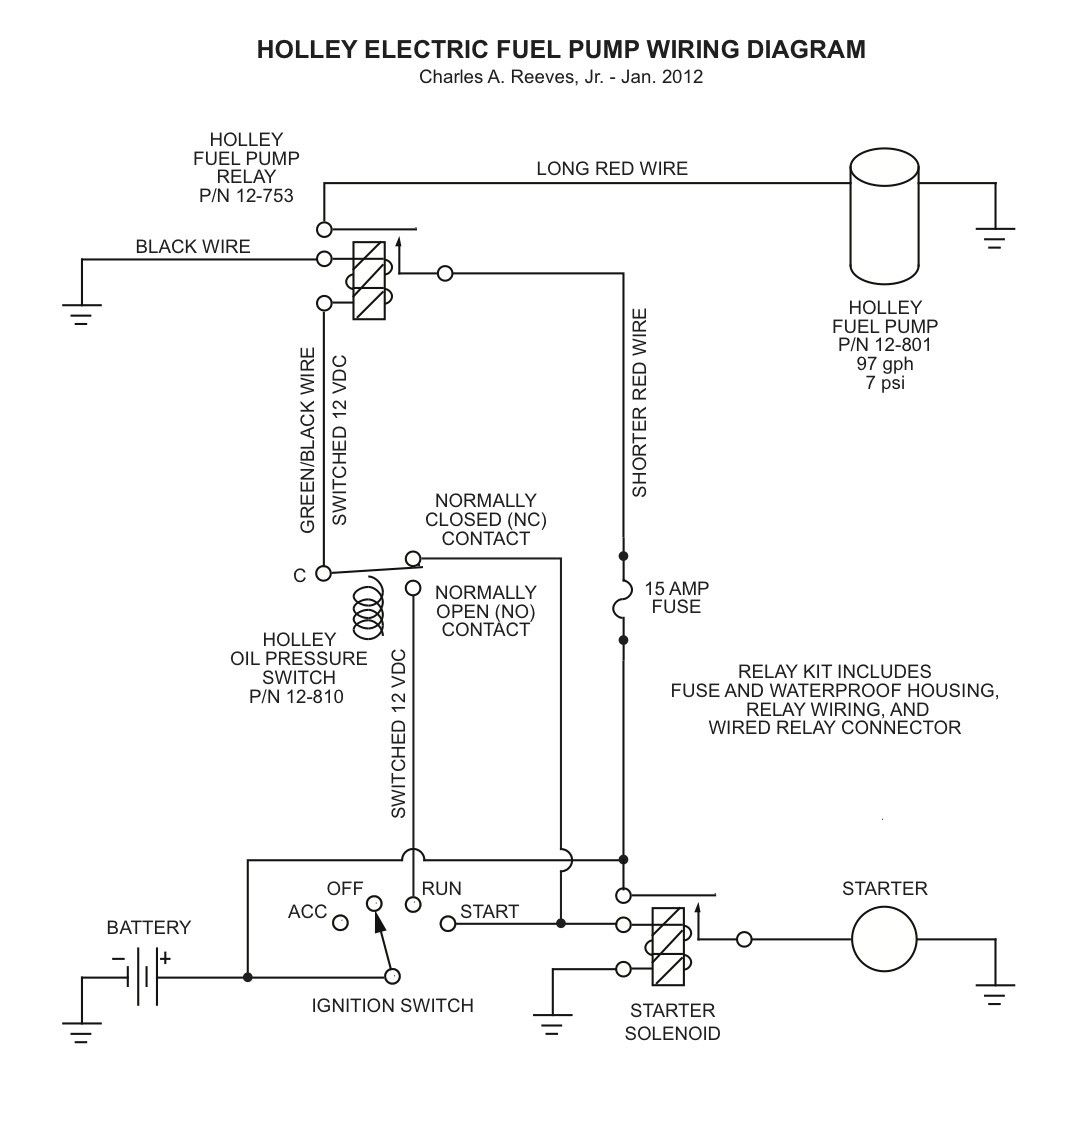 Electric Fuel Pump Relay Wiring Diagram And Installing Holley 1966 Mustang Elect Jpg For Electric Fuel Pump Wiring Diagram Holley Fuel Pump House Wiring Holley